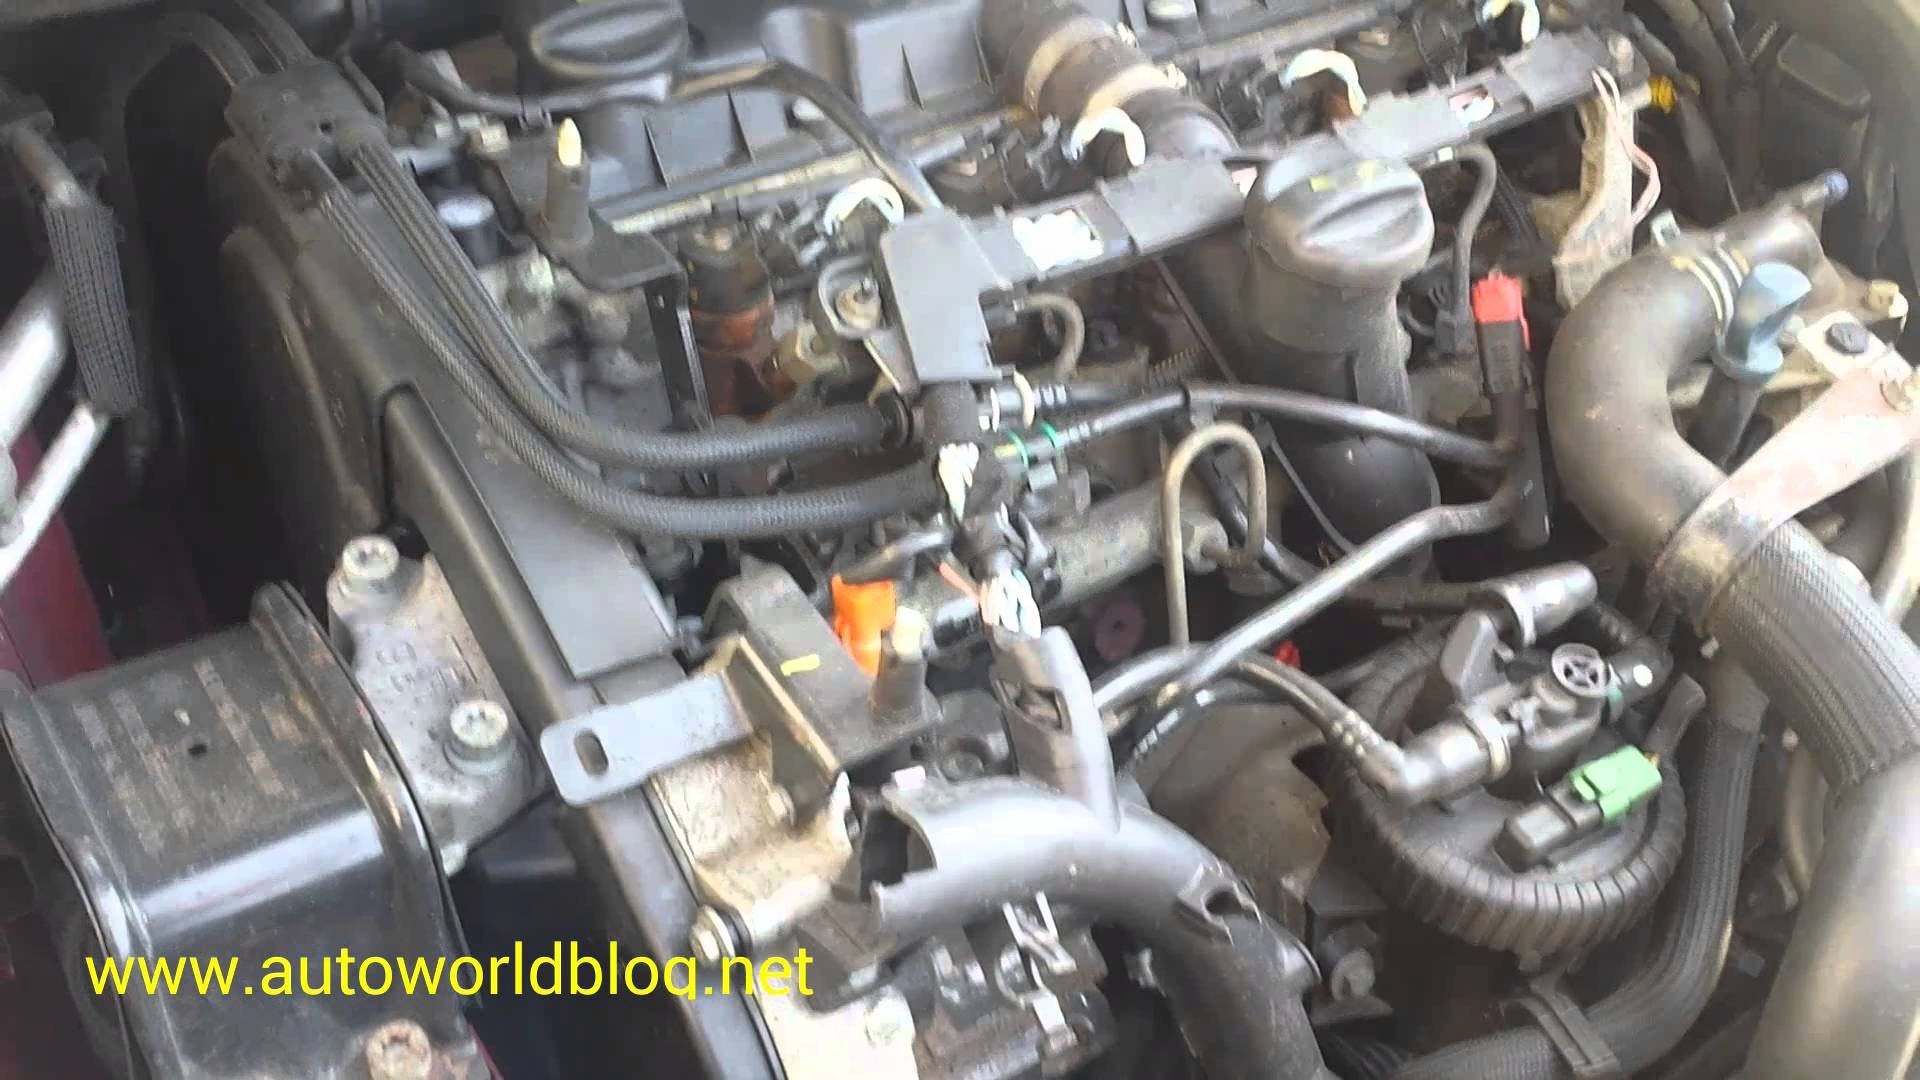 Citroen C4 Engine Diagram Peugeot 307 Glx Hdi 110hp 2003 Diesel Manual Engine sound Problem Of Citroen C4 Engine Diagram